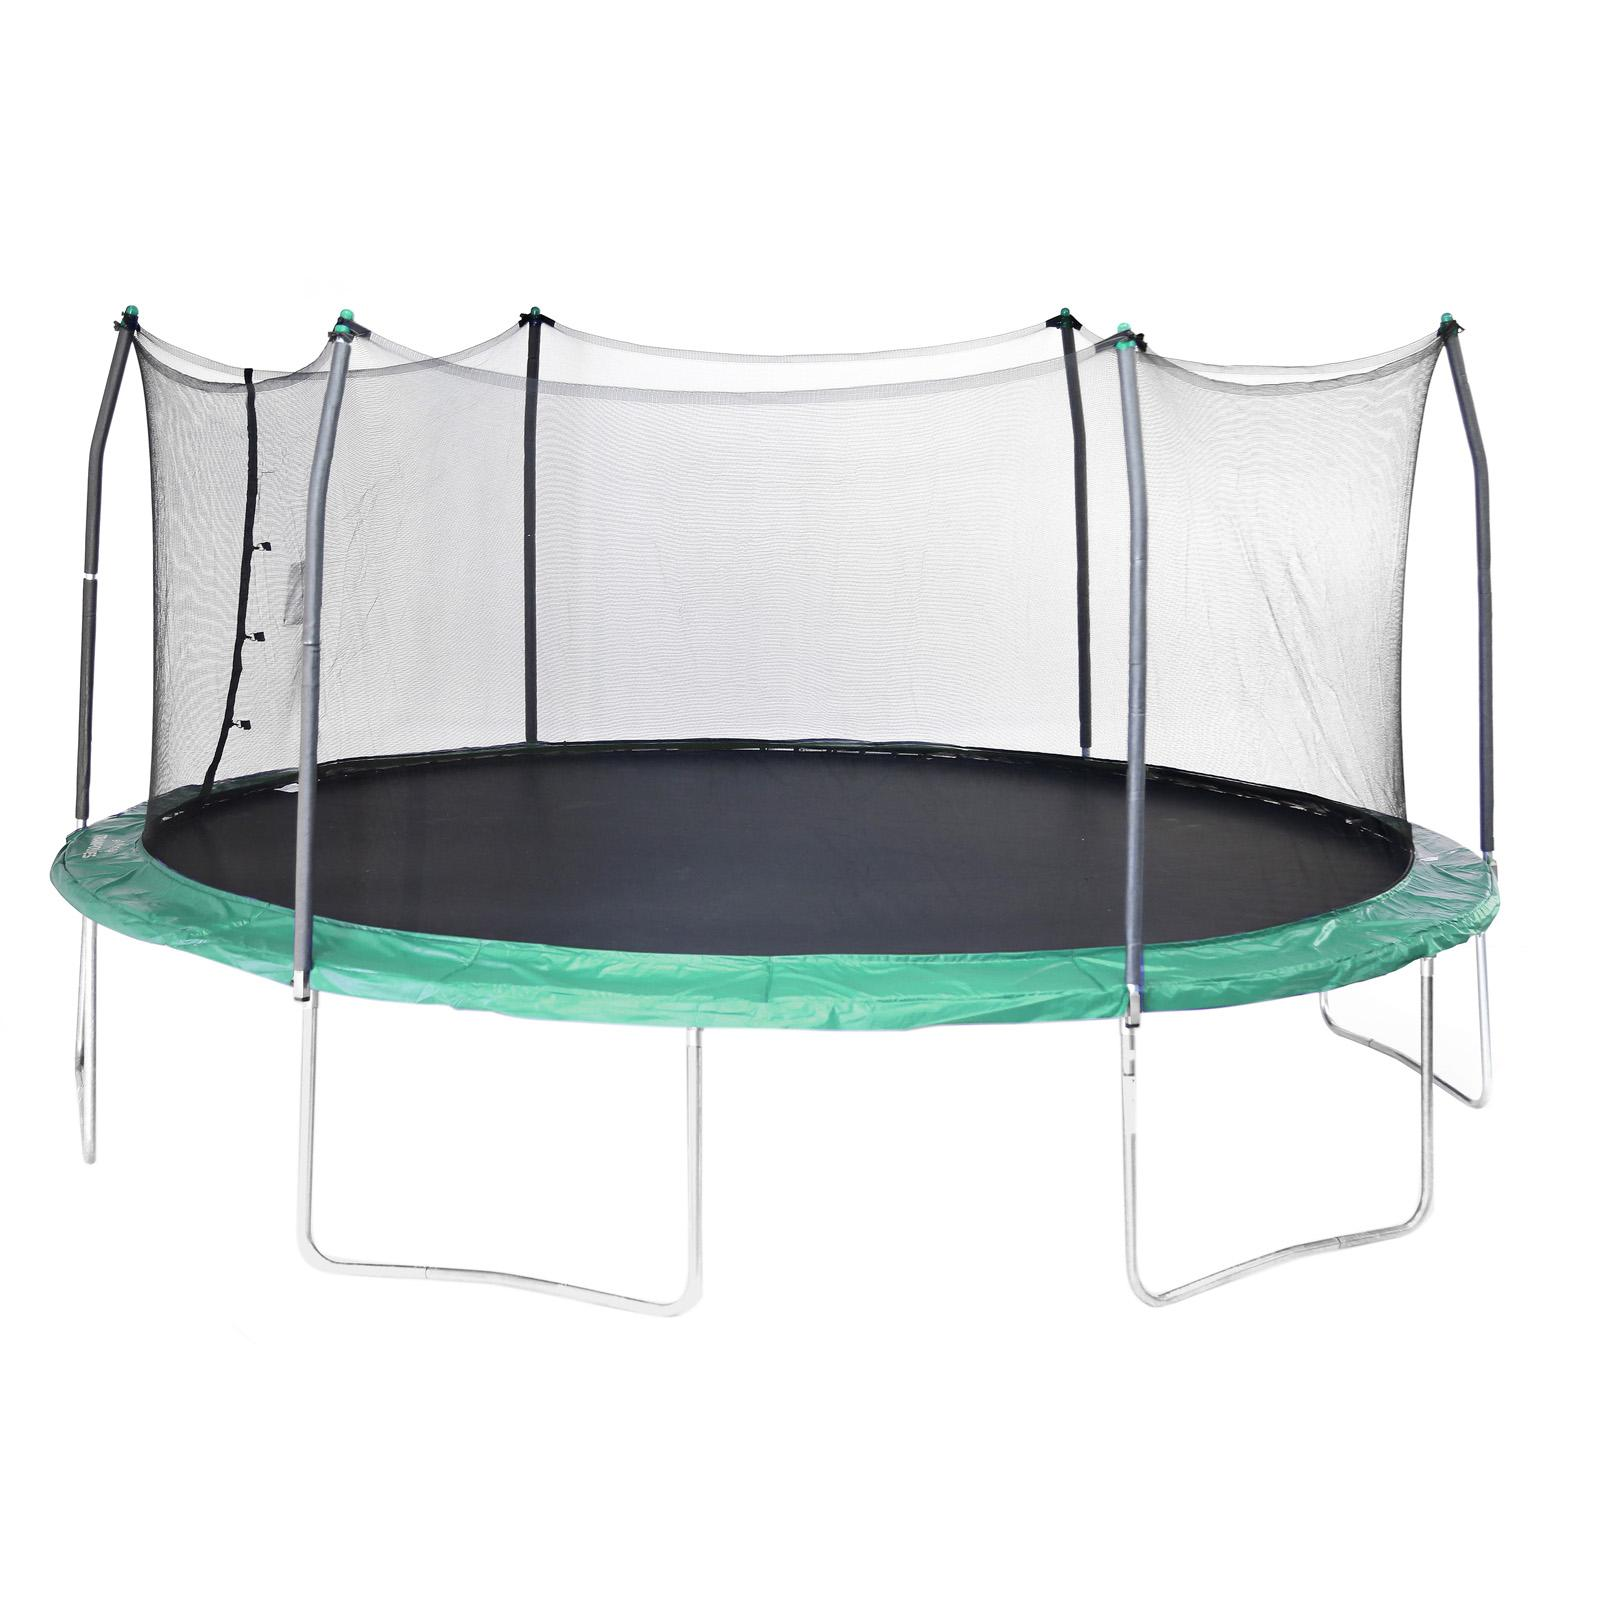 Skywalker Trampolines 17 Ft Oval Trampoline With Safety Enclosure Green Skw069 2